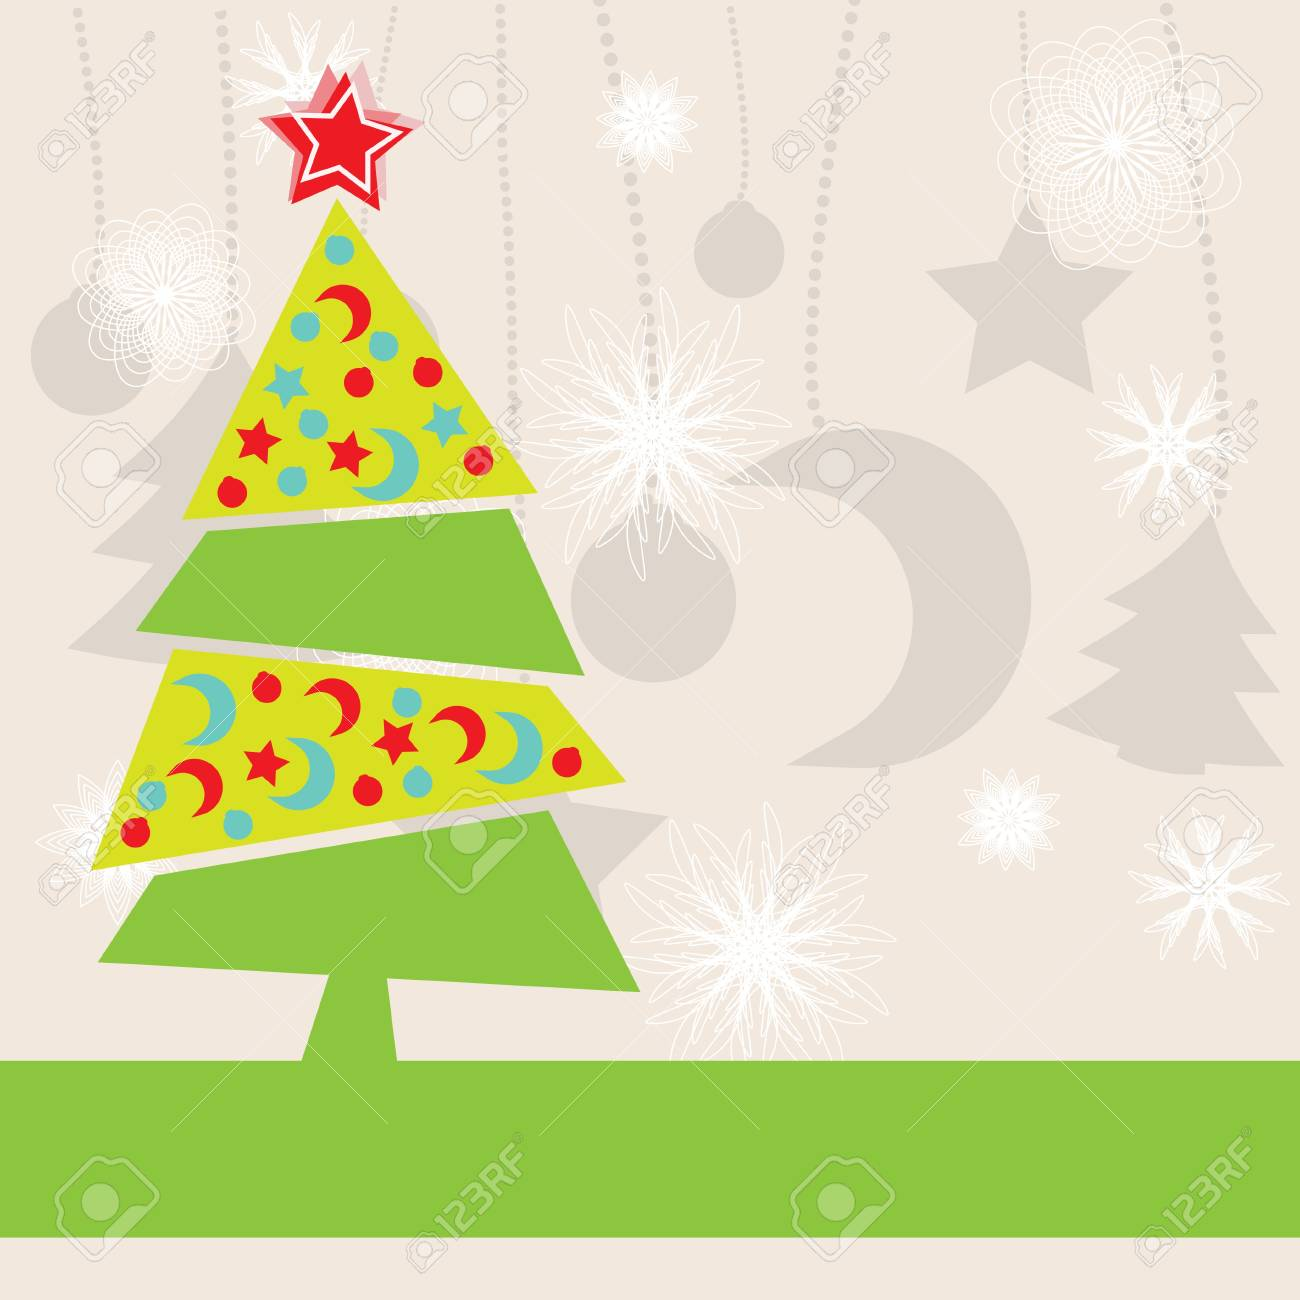 Christmas Kids Background Royalty Free Cliparts, Vectors, And Stock ...